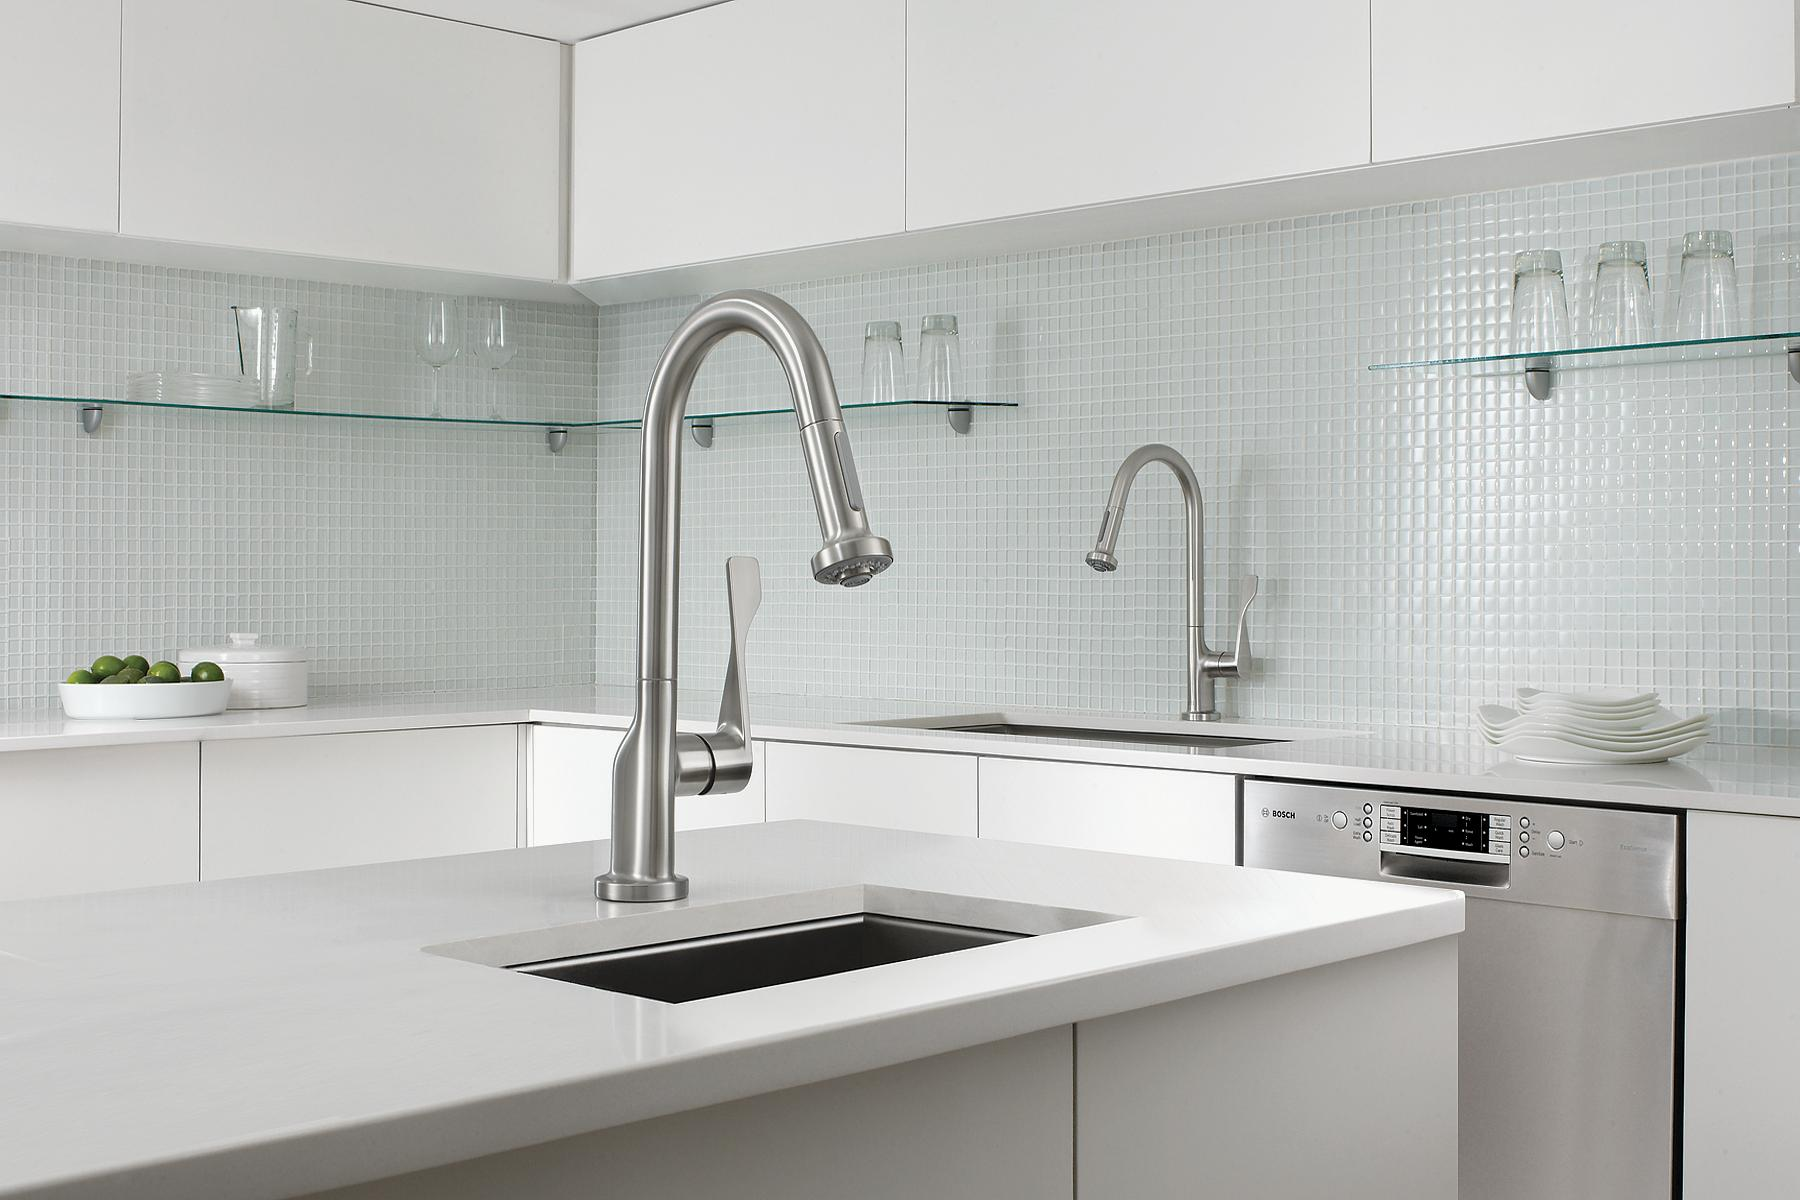 hansgrohe axor citterio prep kitchen faucet remodeling kitchen faucets plumbing bath. Black Bedroom Furniture Sets. Home Design Ideas